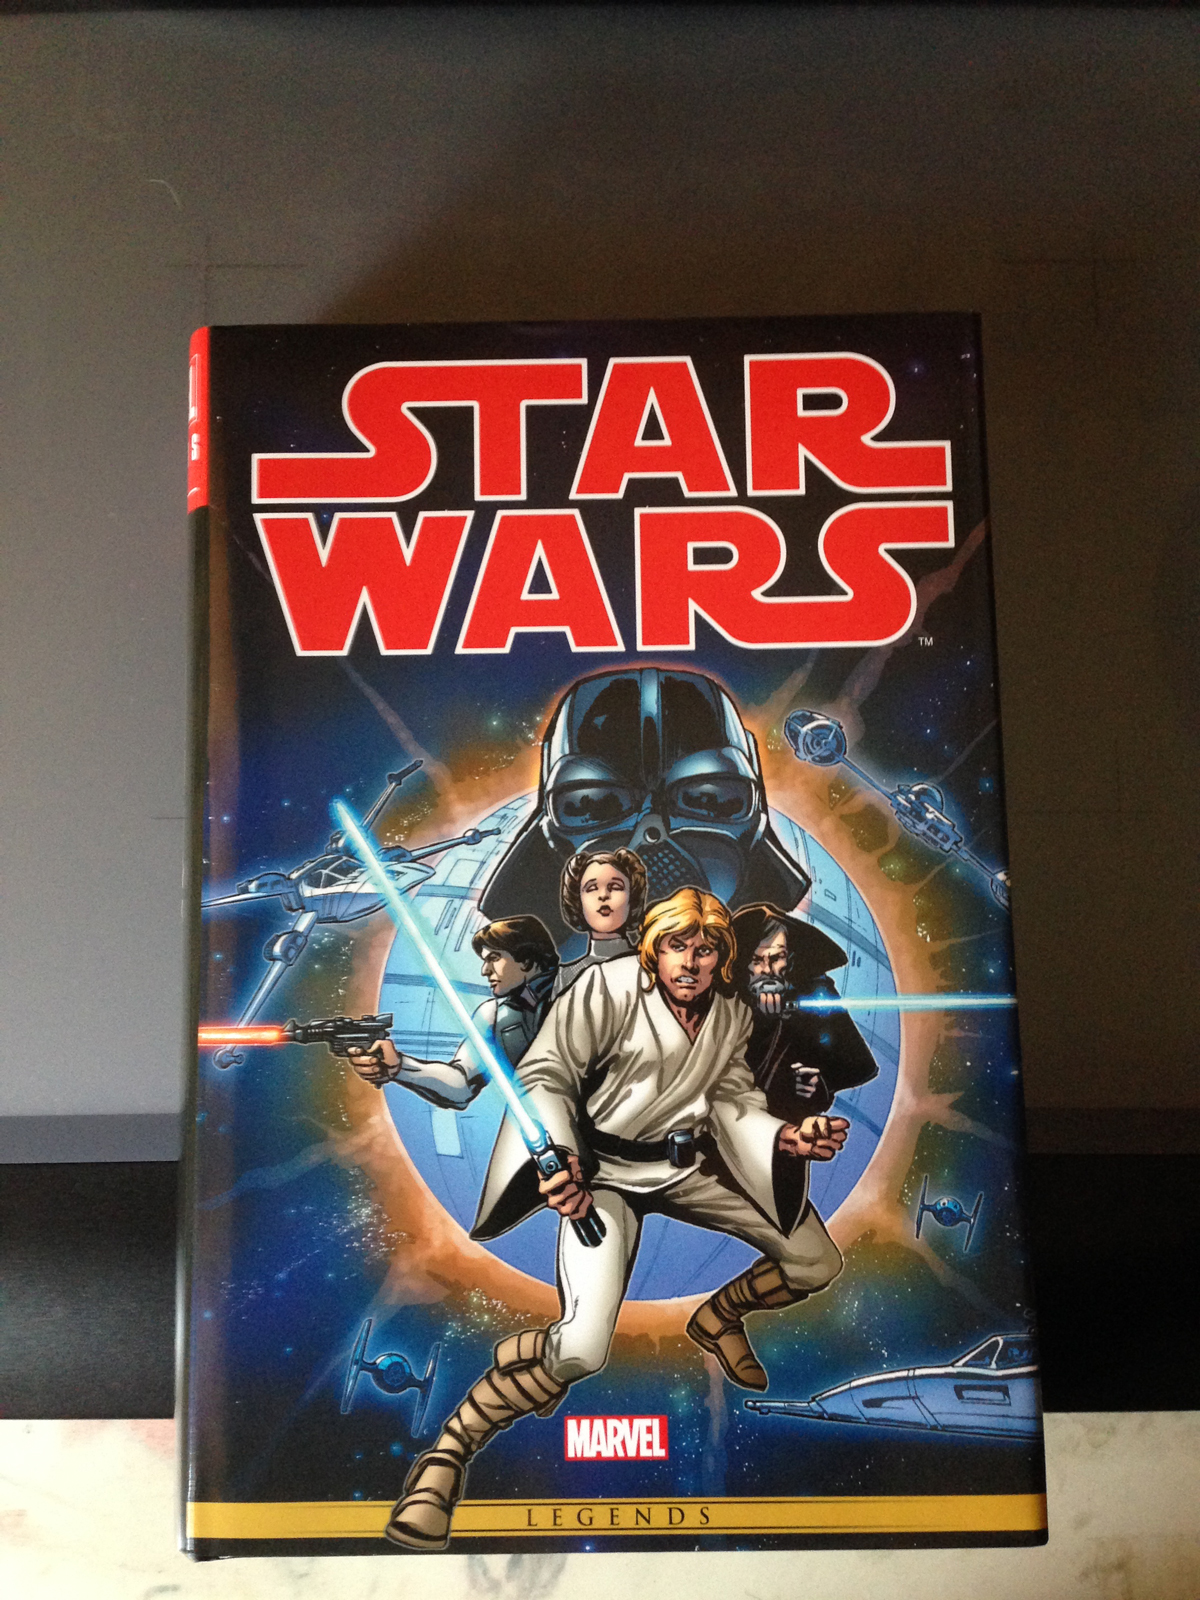 Star-Wars-front-cover